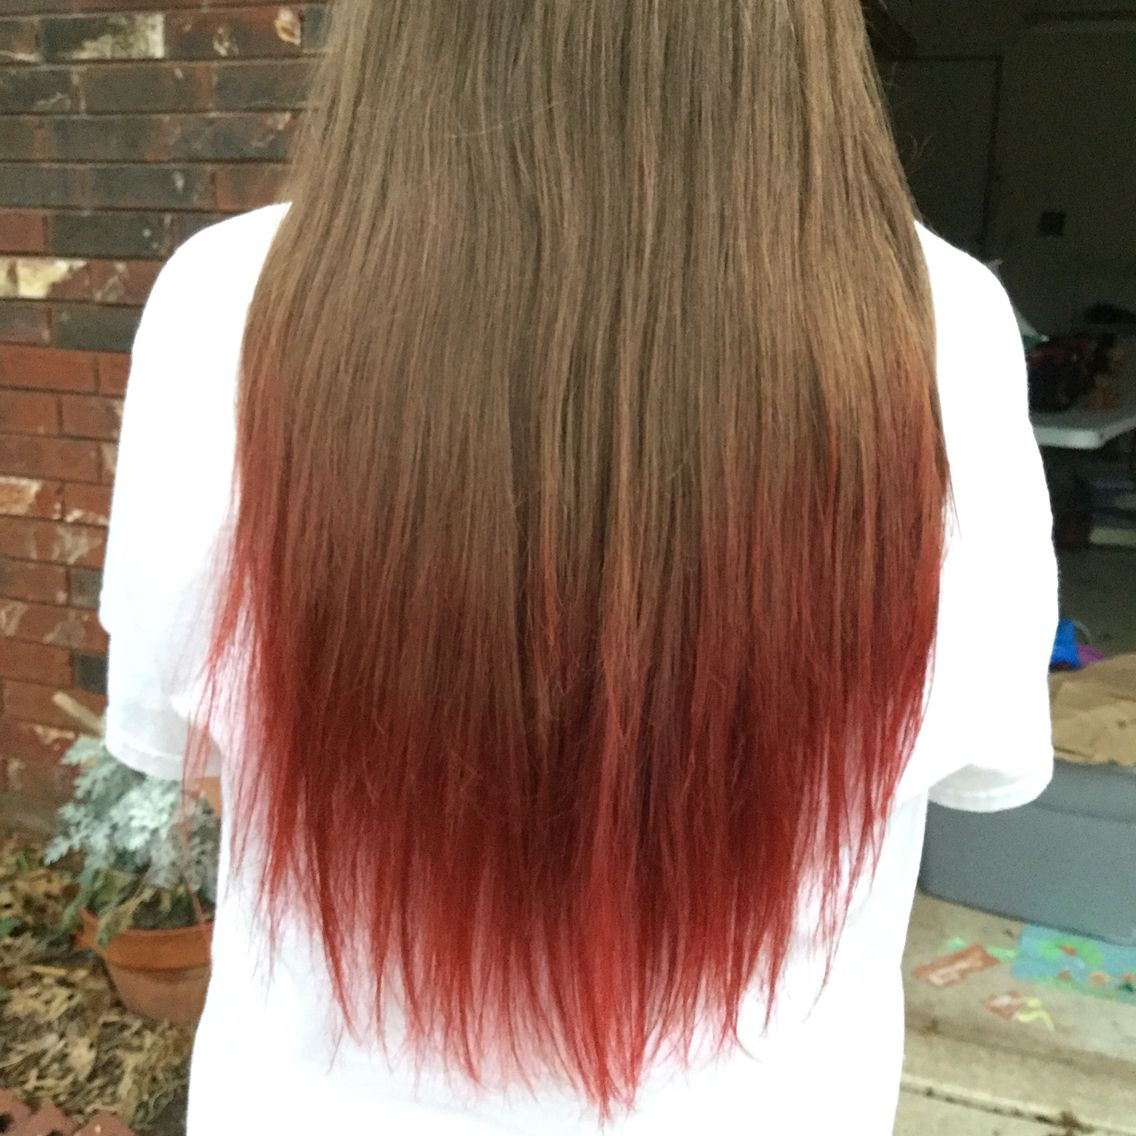 Dip Dyed With Cherry Kool Aid Boil Some Water Pour Carefully Into A Mug Or Heat Safe Cup Or Bowl Add Five Packet Red Hair Tips Dyed Blonde Hair Dipped Hair